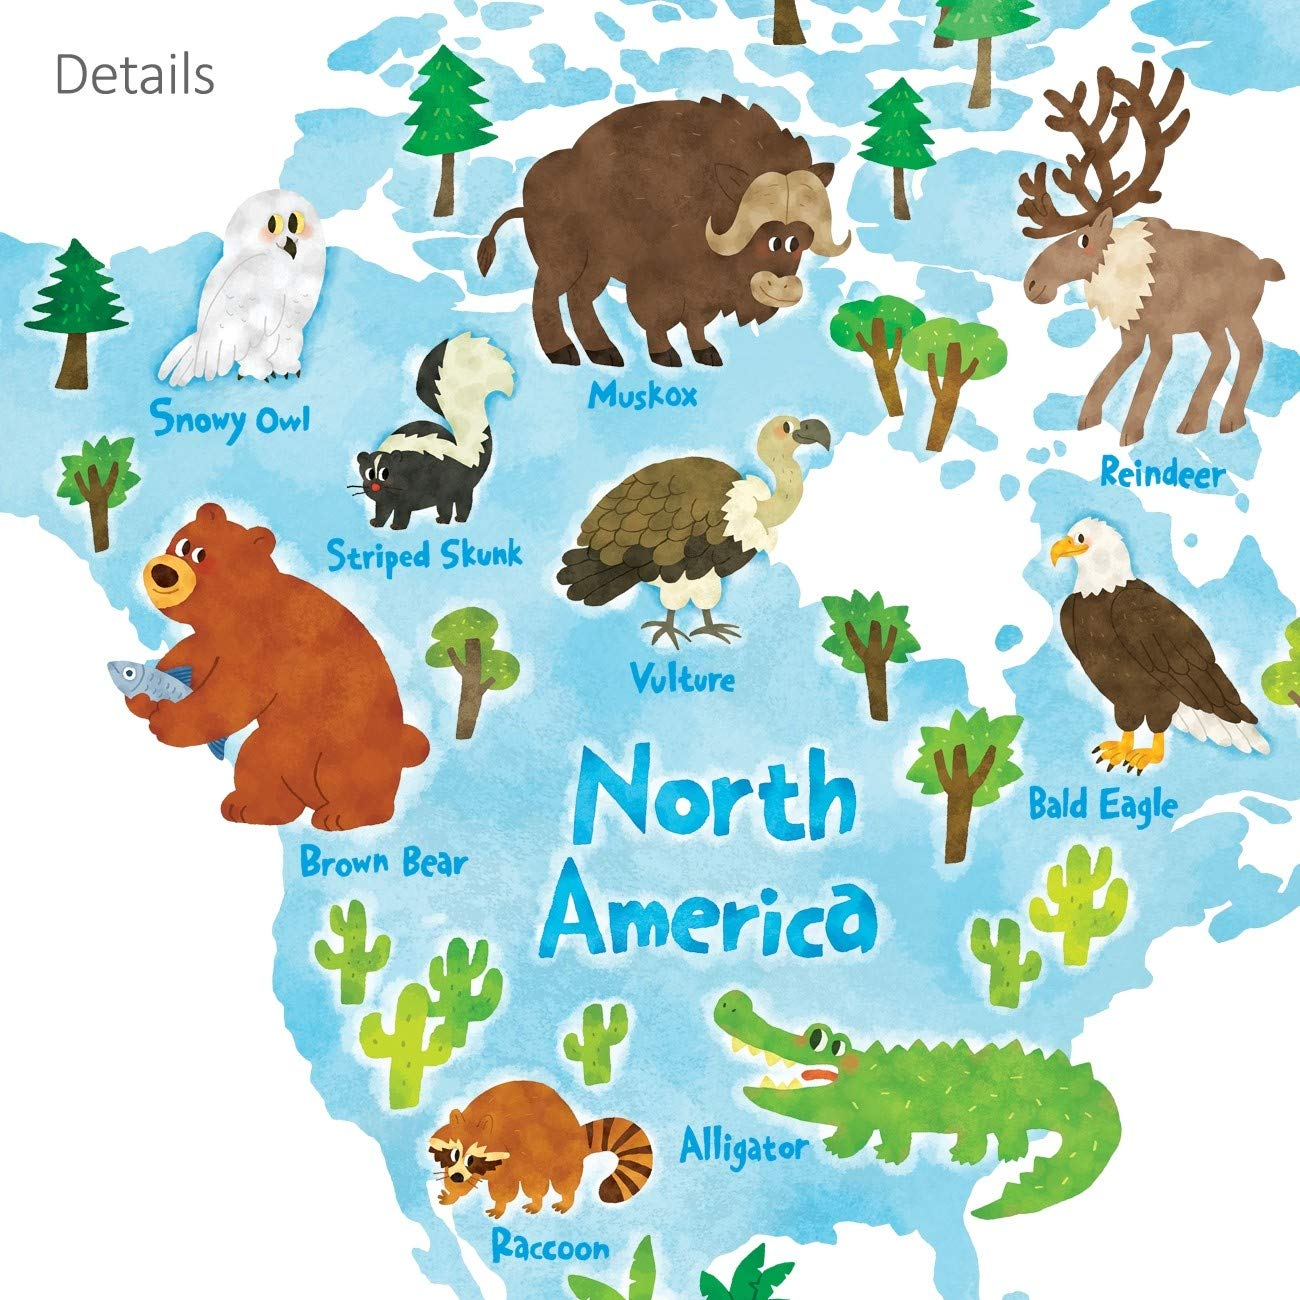 Decowall DLT-1615 Animal World Map Kids Wall Decals Wall Stickers Peel and Stick Removable Wall Stickers for Kids Nursery Bedroom Living Room (XLarge) by Decowall (Image #6)